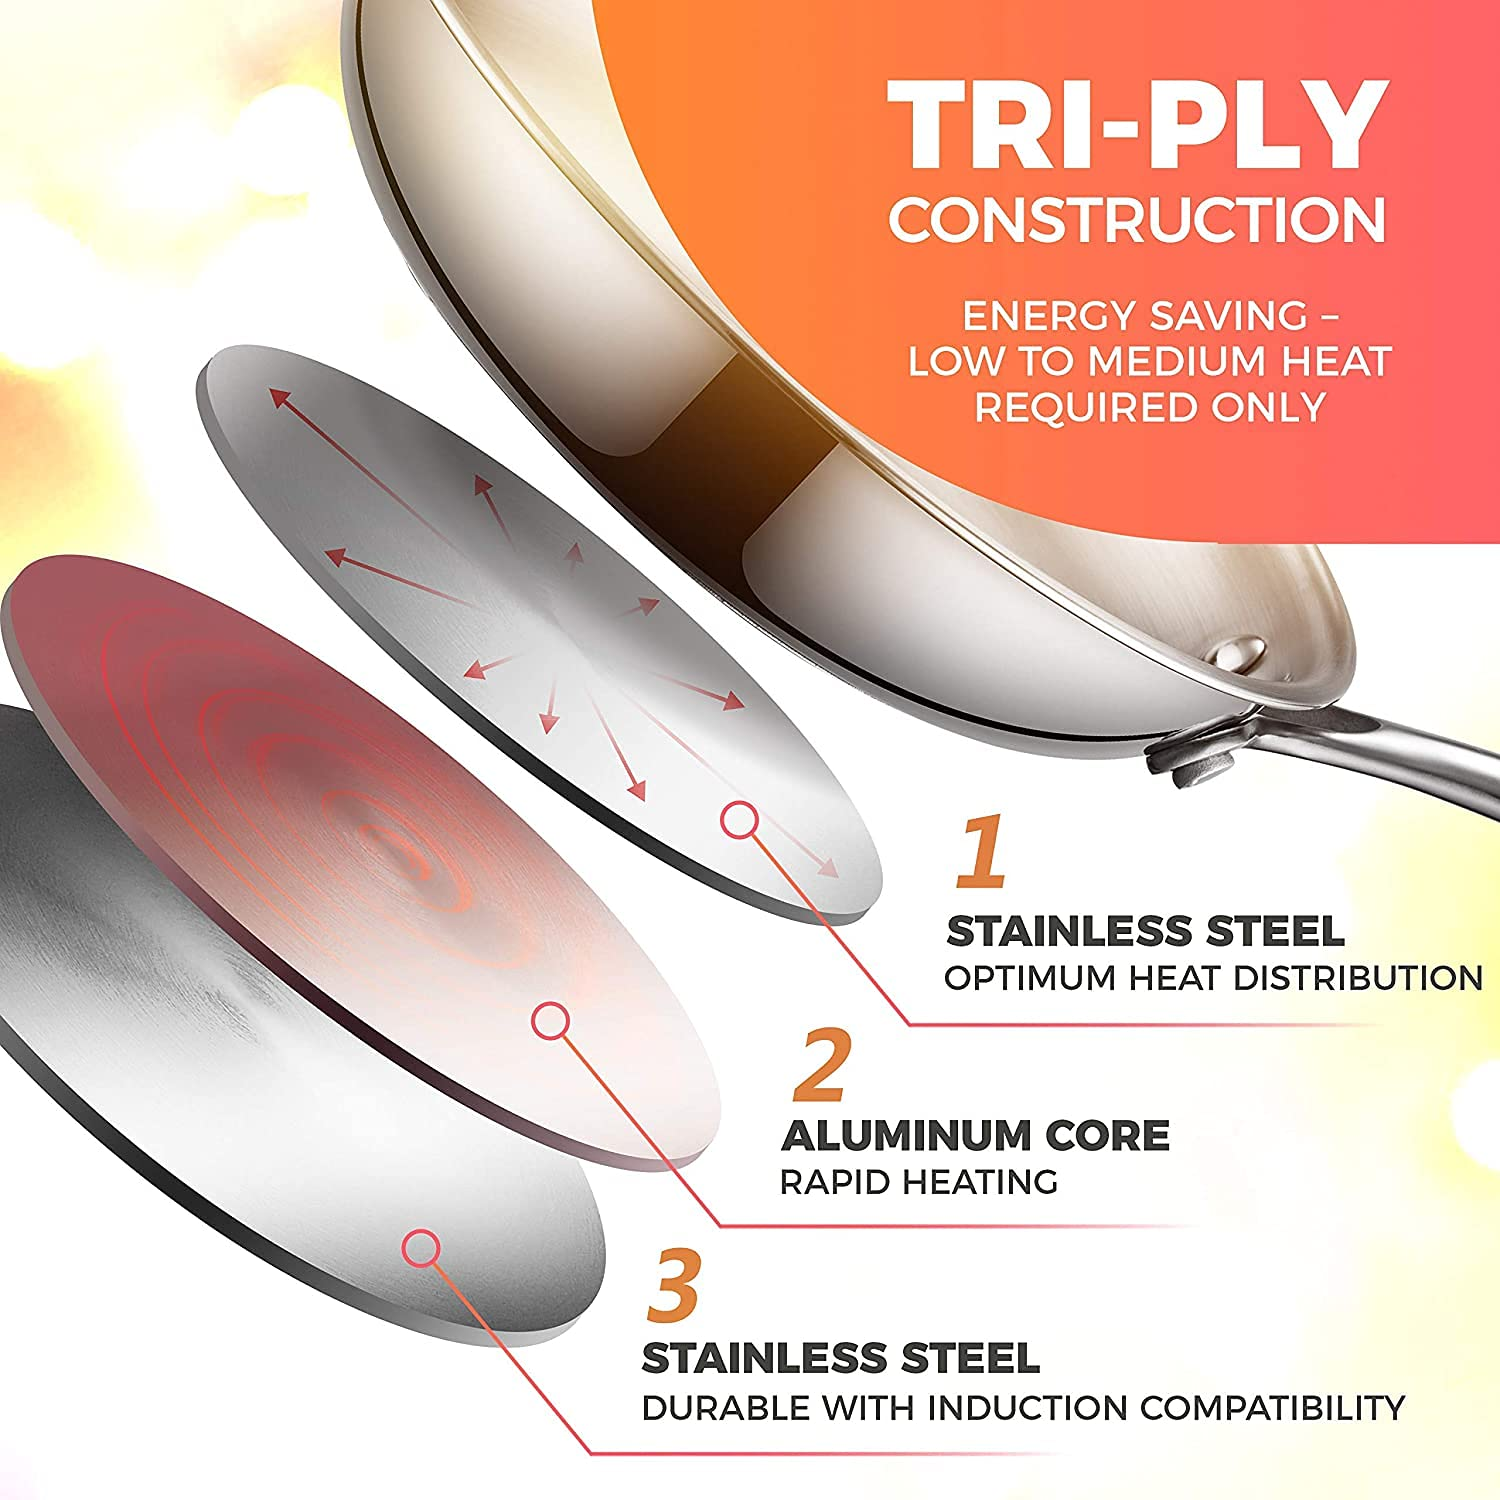 Tri-ply Frying Pan  Healthy Cooking (Zero Non-Stick Coating)